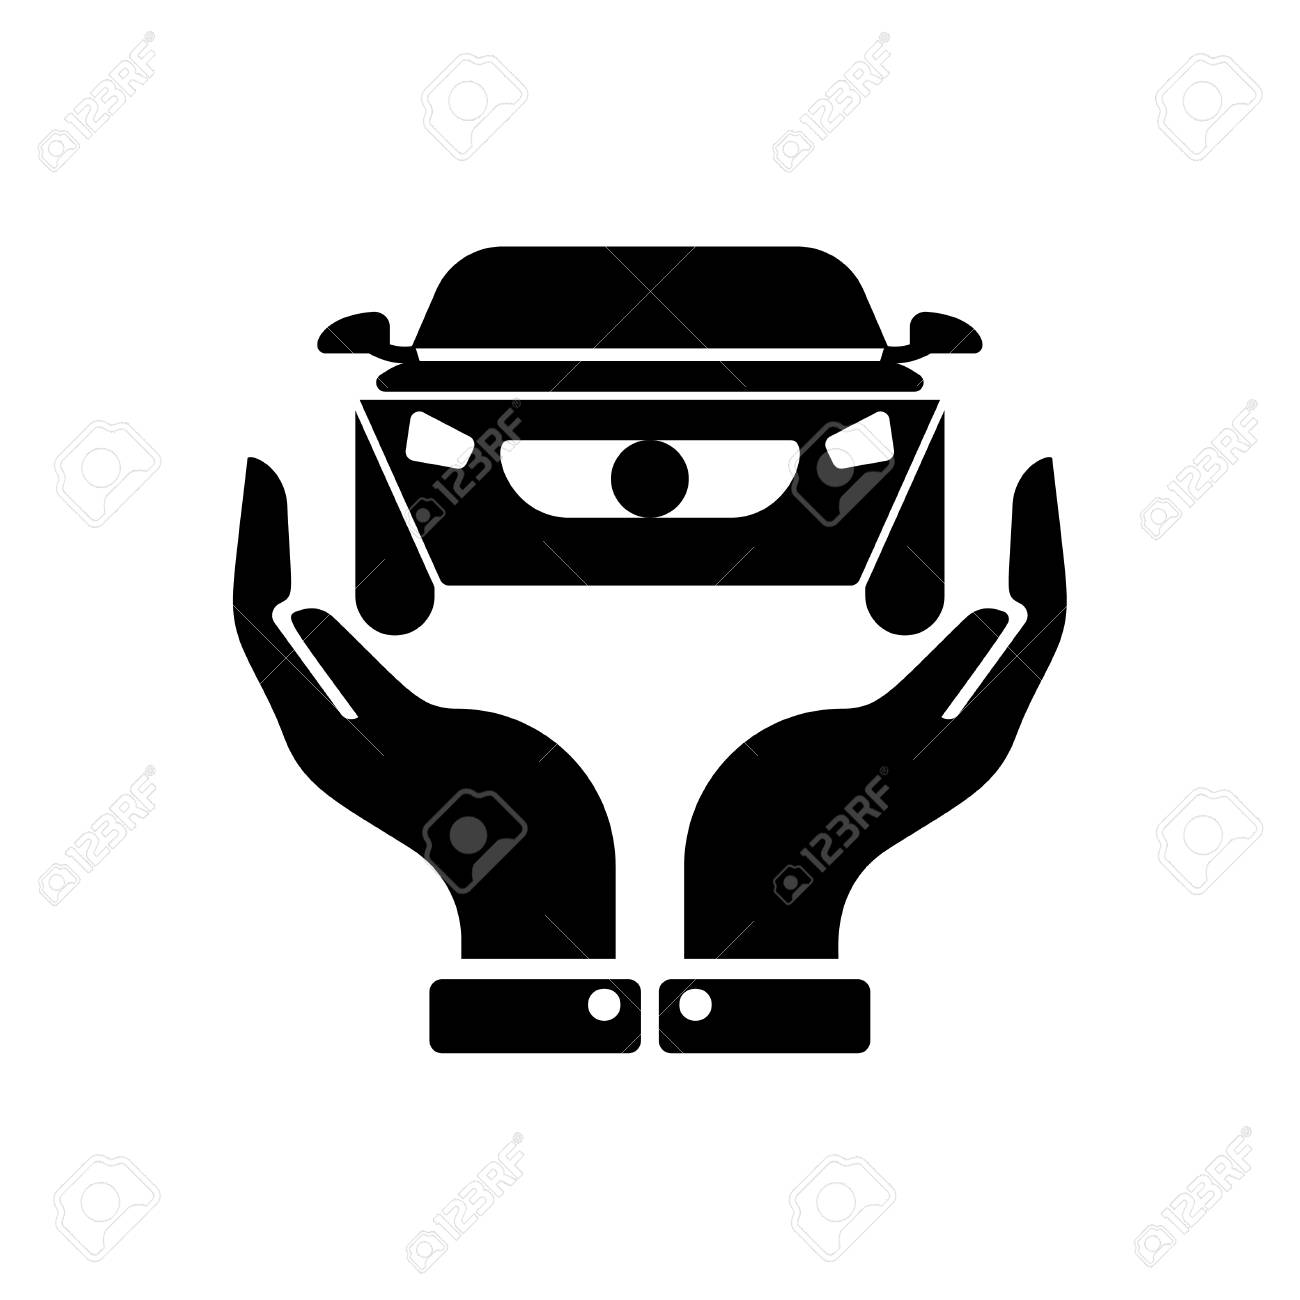 Hands Holding Car Auto Insurance Icon Vector Black Royalty Free